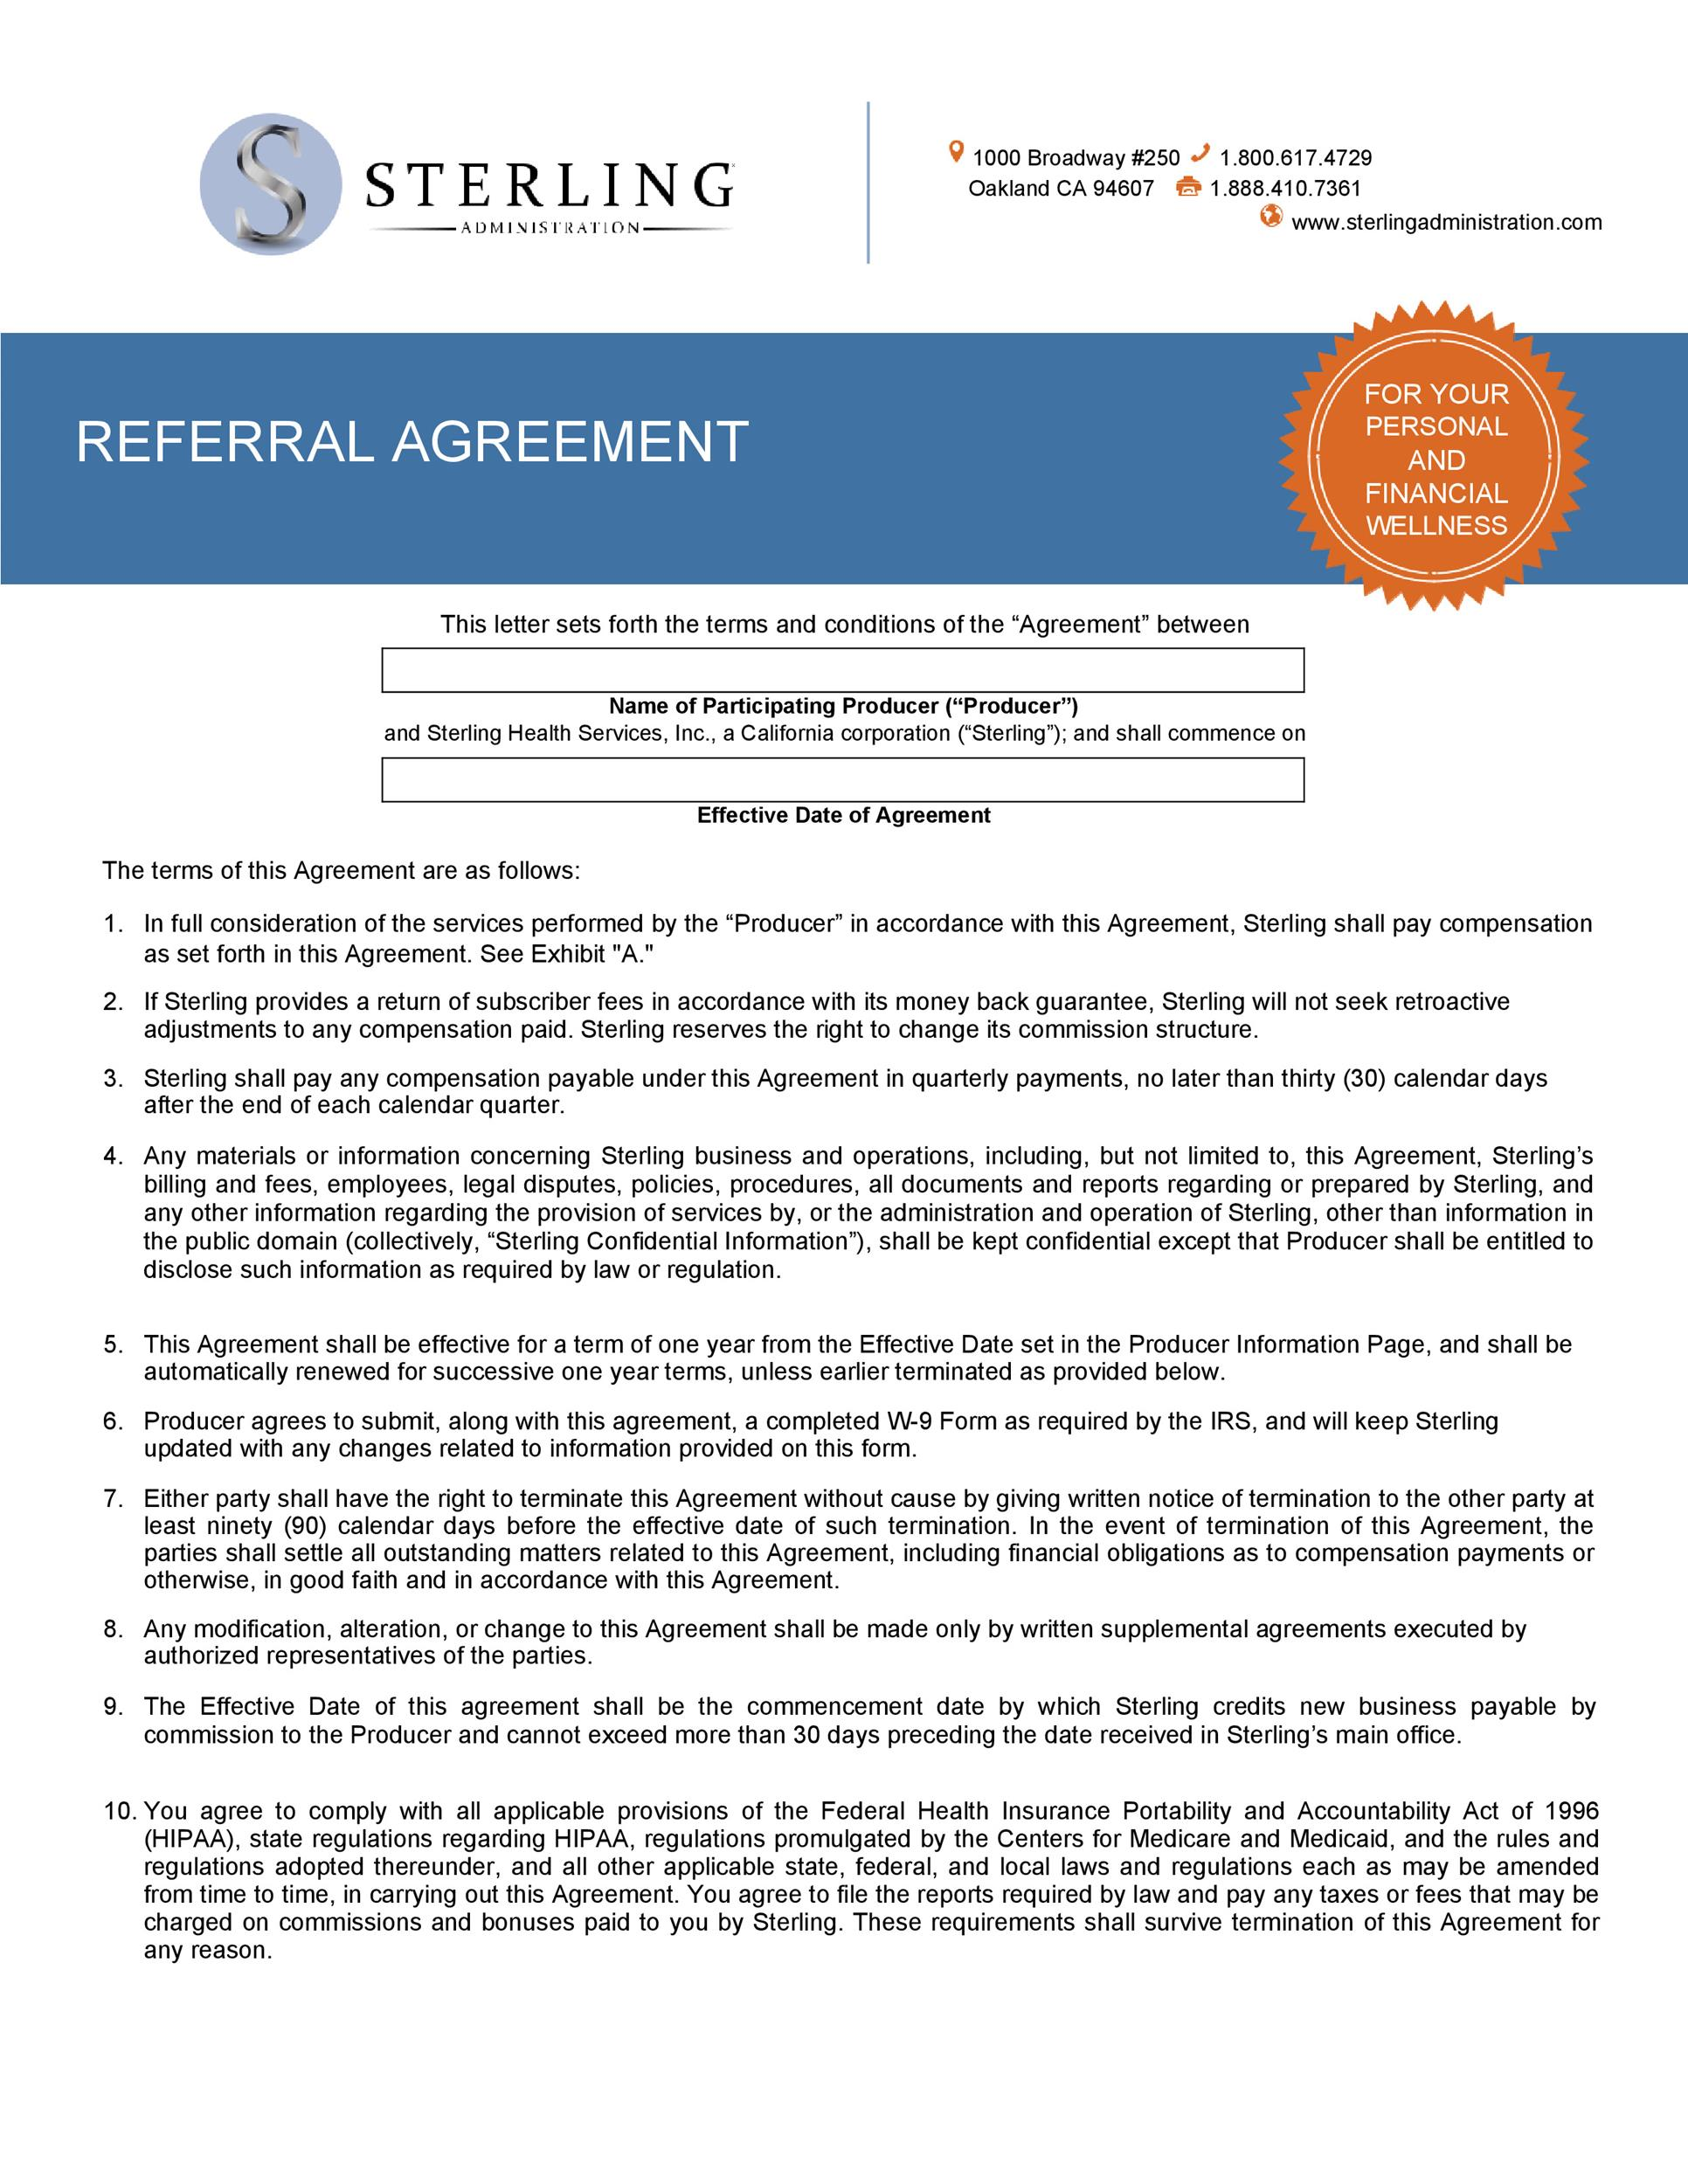 Free referral agreement template 25